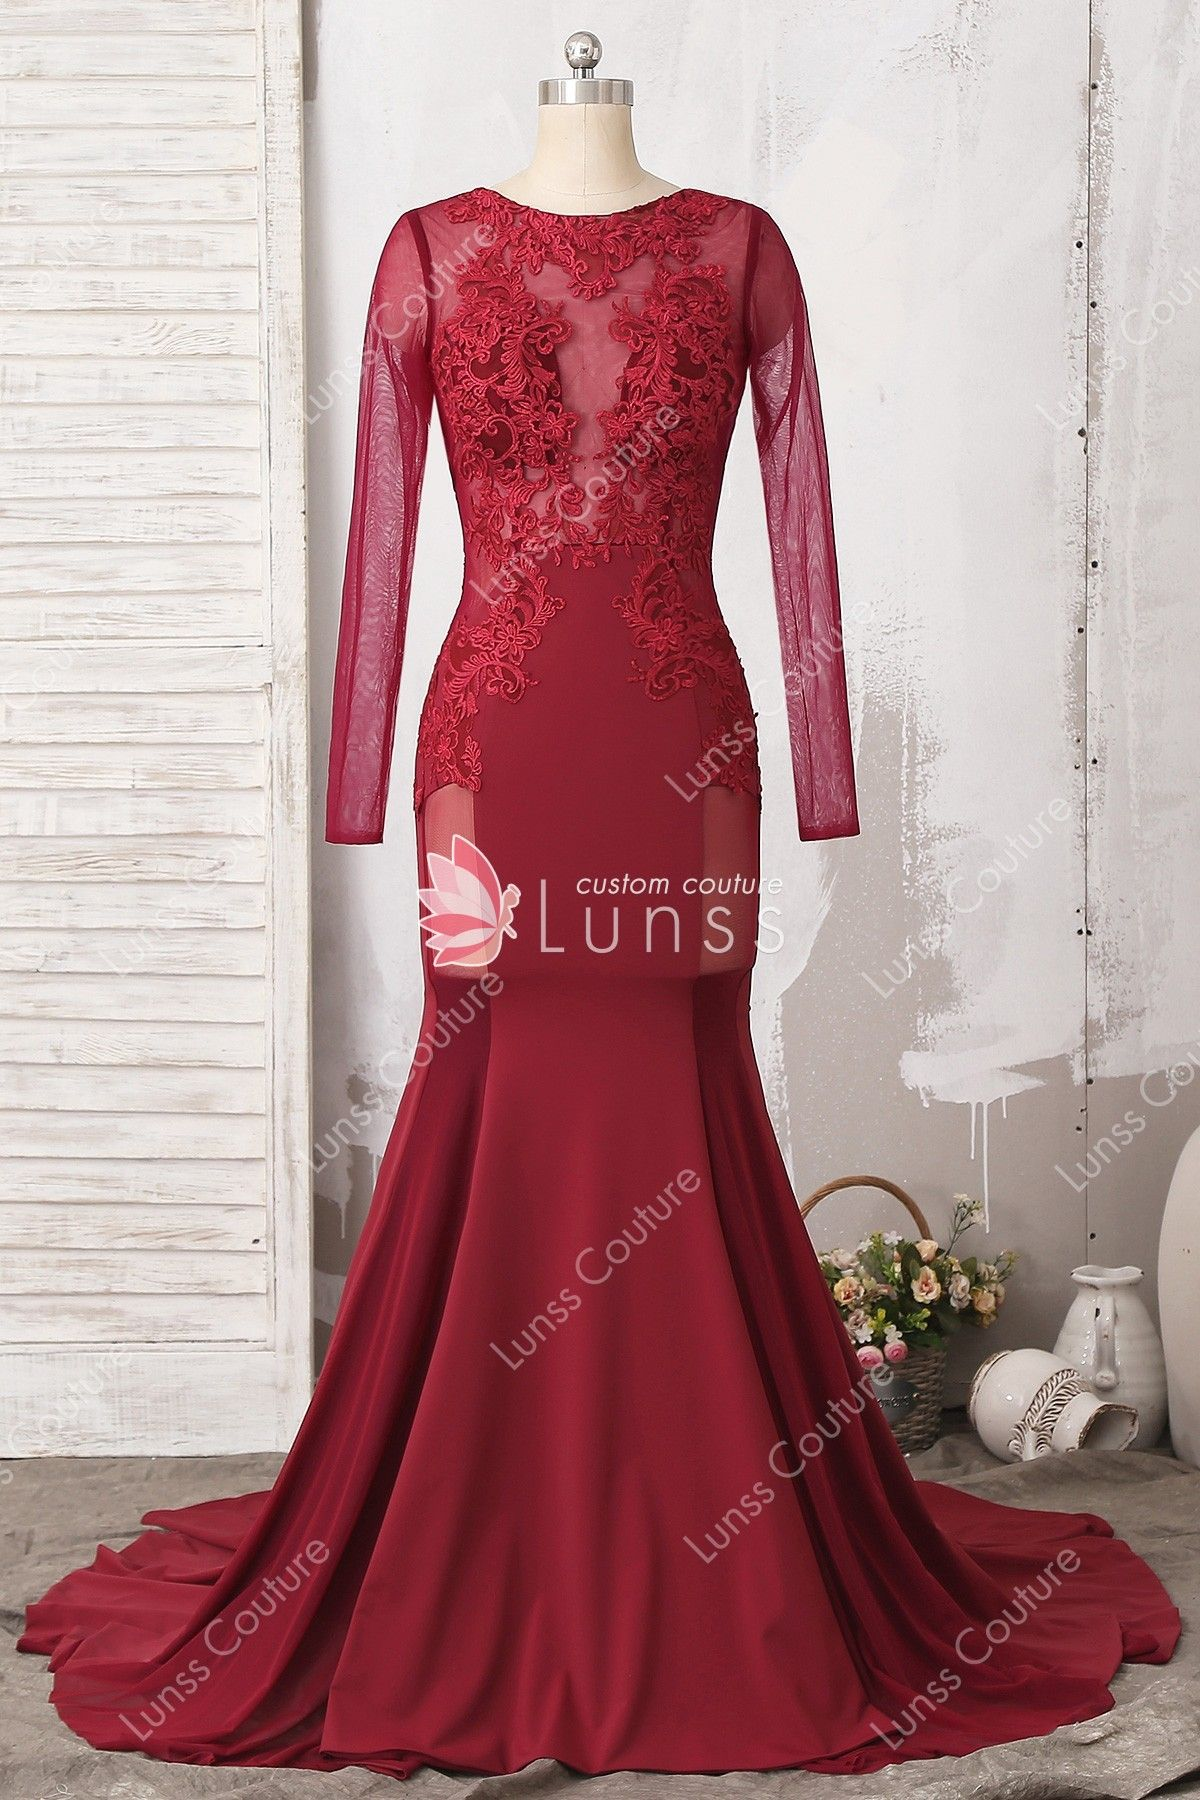 5db2bf6262 Wine Illusion Long Sleeve Fitted Lace Jersey Mermaid Long Prom Dress  Homecoming Dress for wholesale